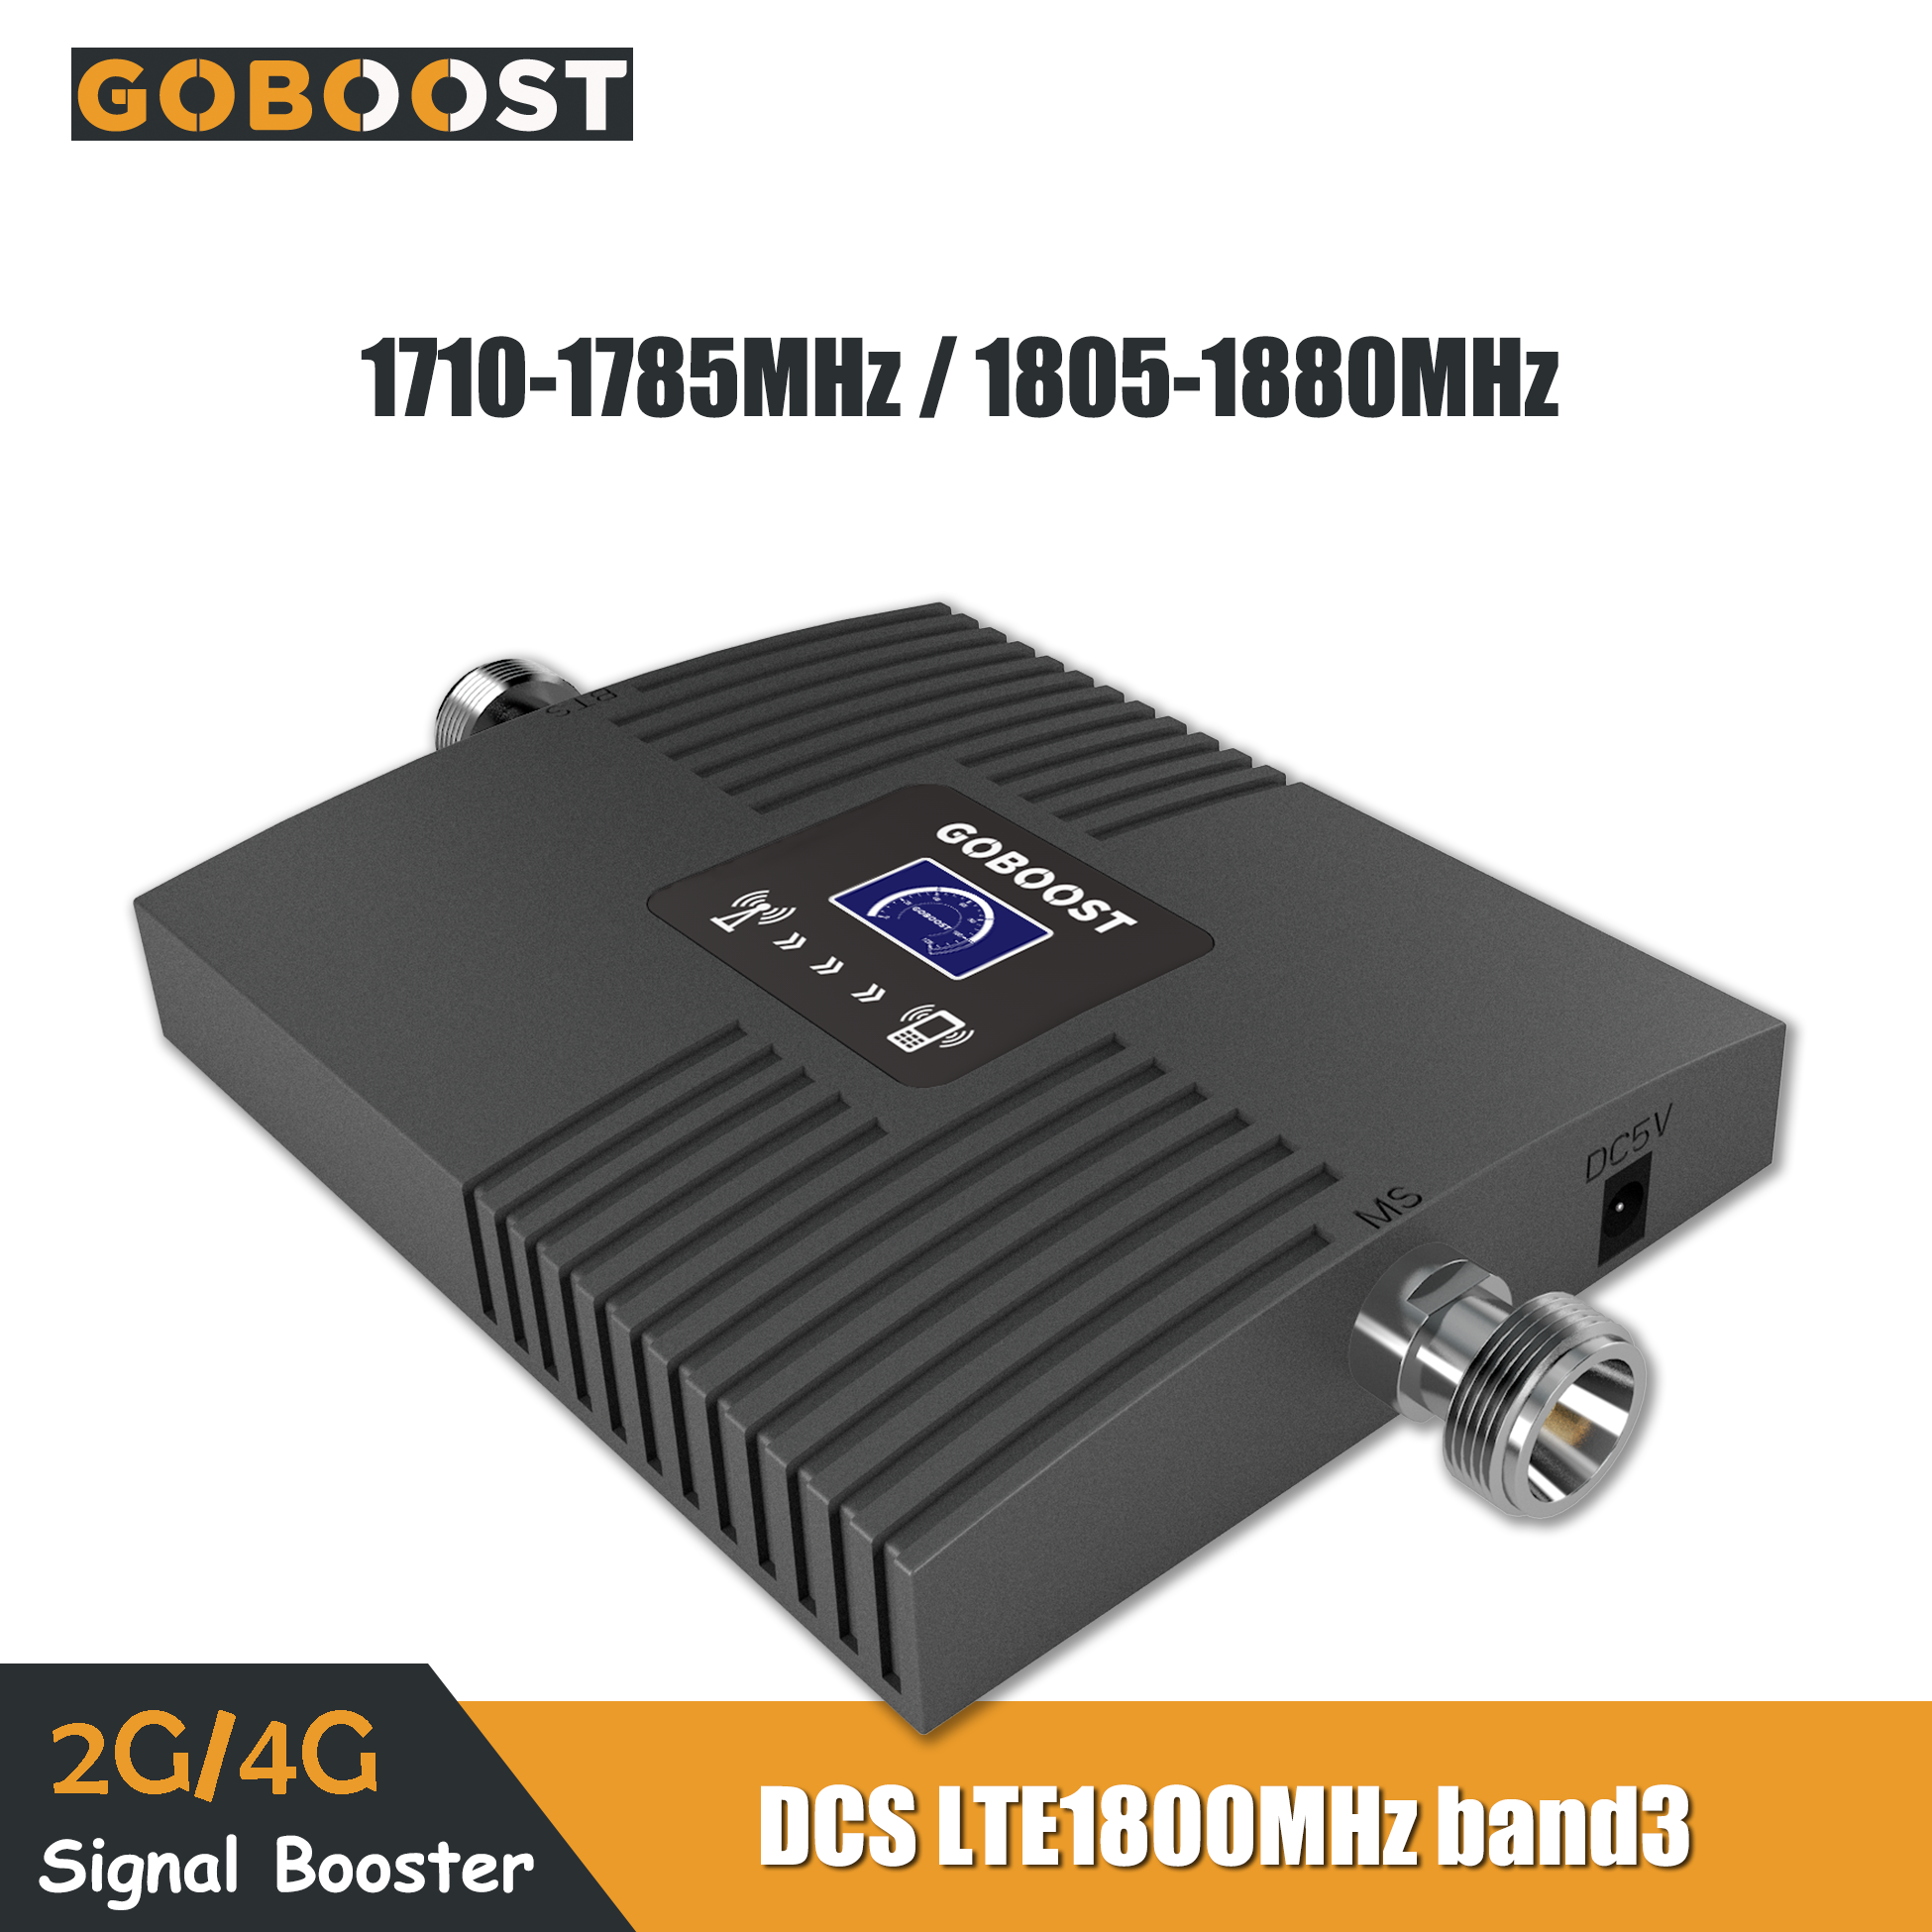 DCS 2G/4G LTE 1800mhz Band3 Cell Phone Cellular Signal Booster LCD Display Mini Mobile Amplifier Repeater Network Data 65dB Gain